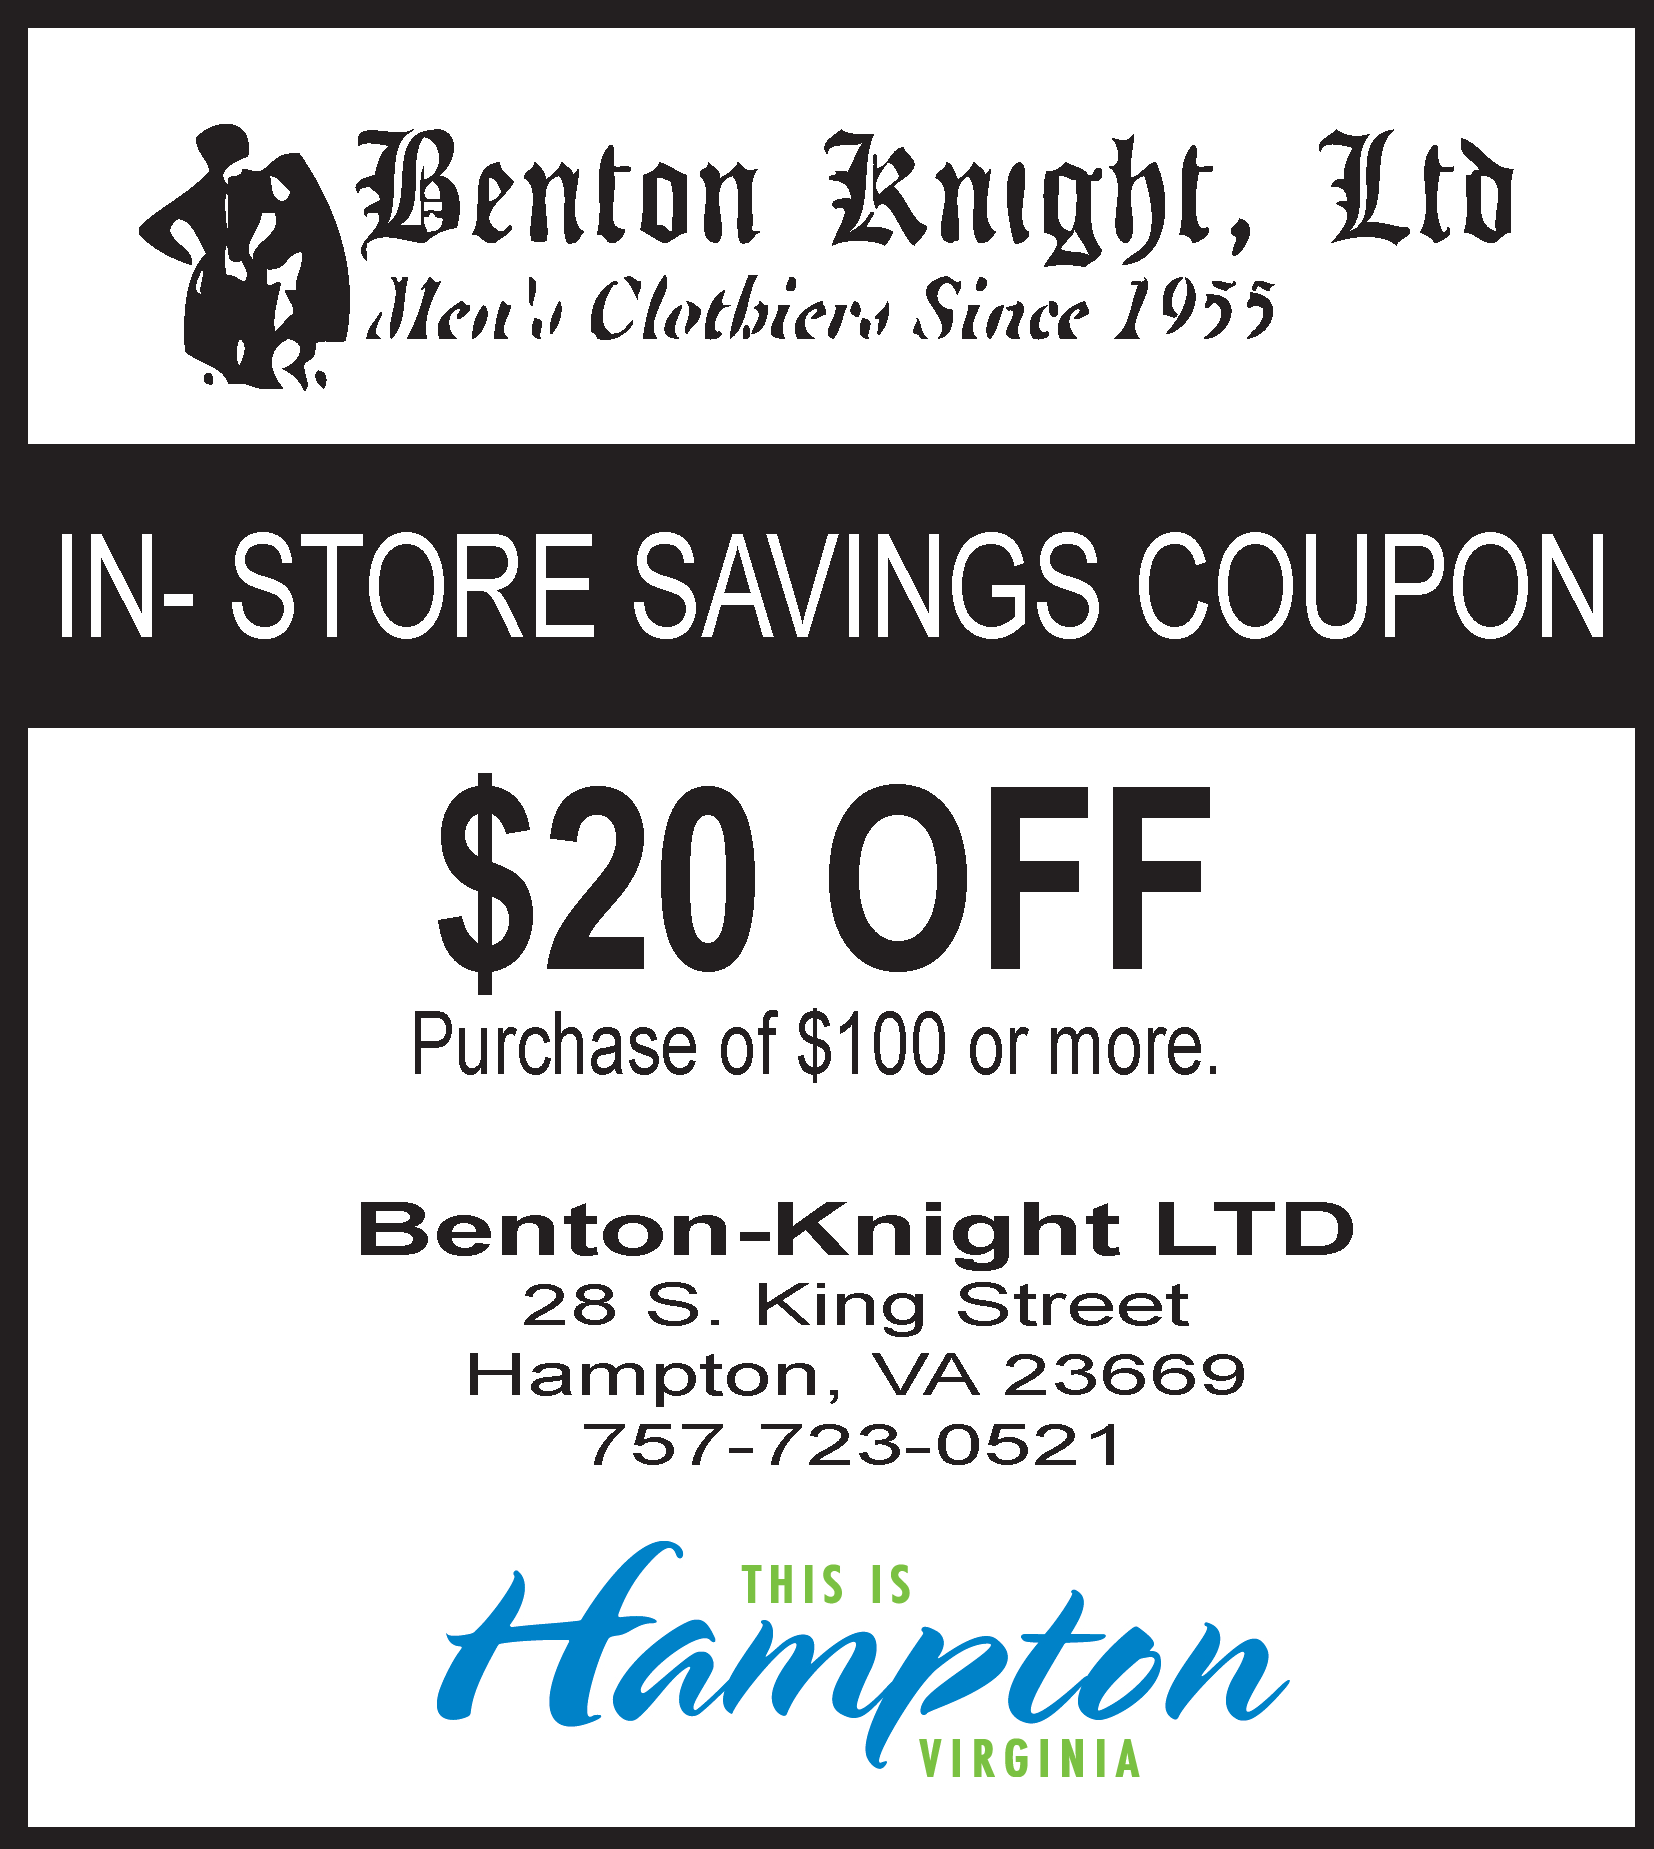 Benton-Knight Clothier